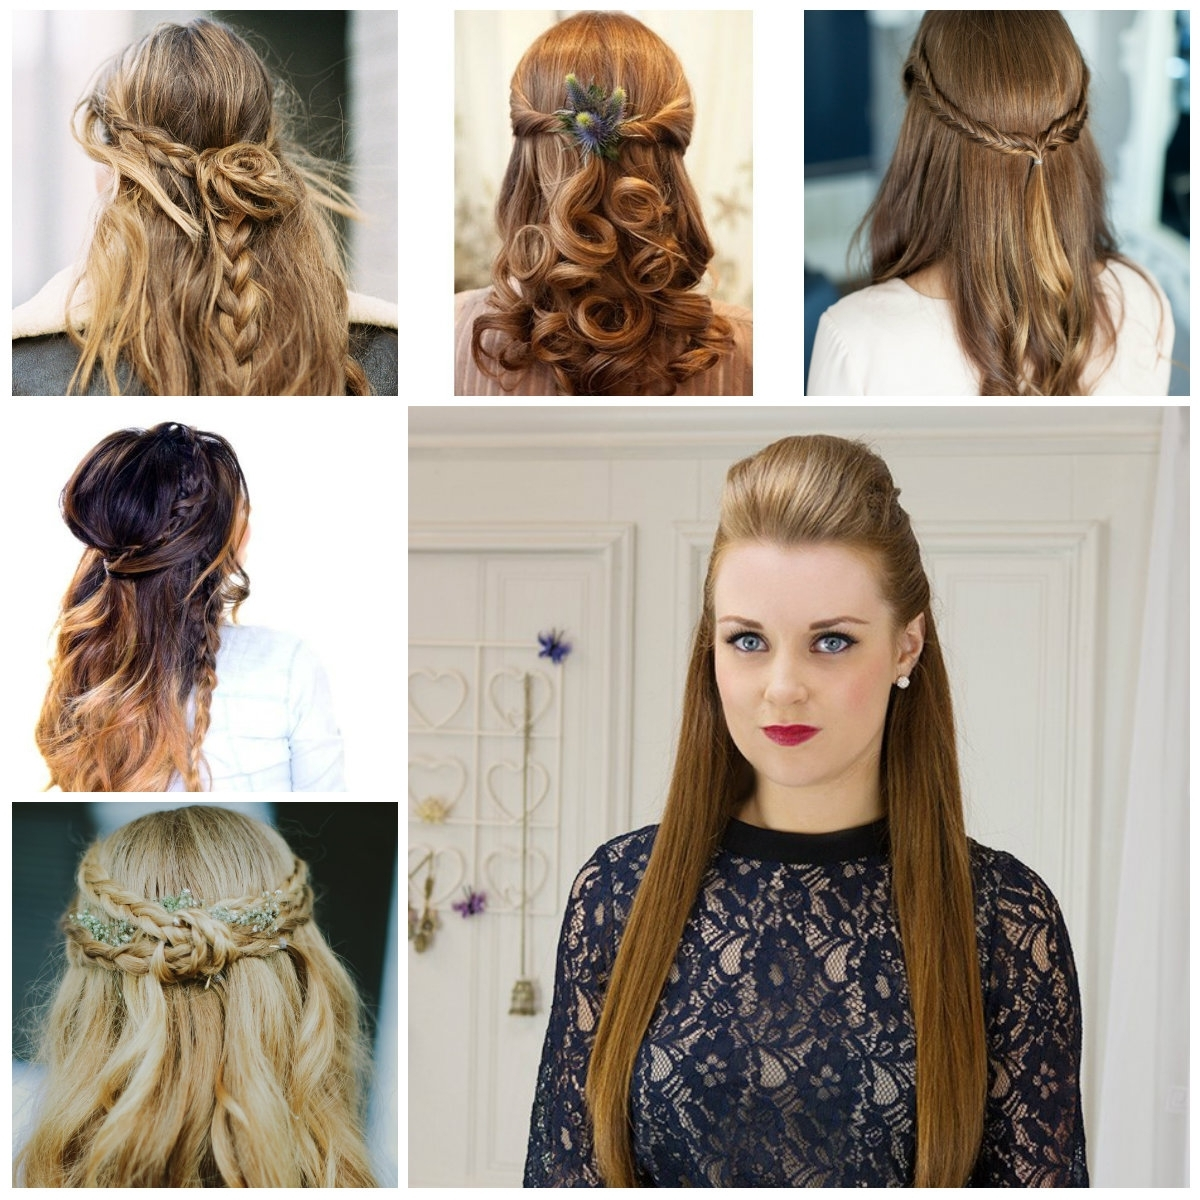 Wedding Hairstyle For Long Hair Tutorial: 15 Inspirations Of Easy Wedding Hairstyles For Long